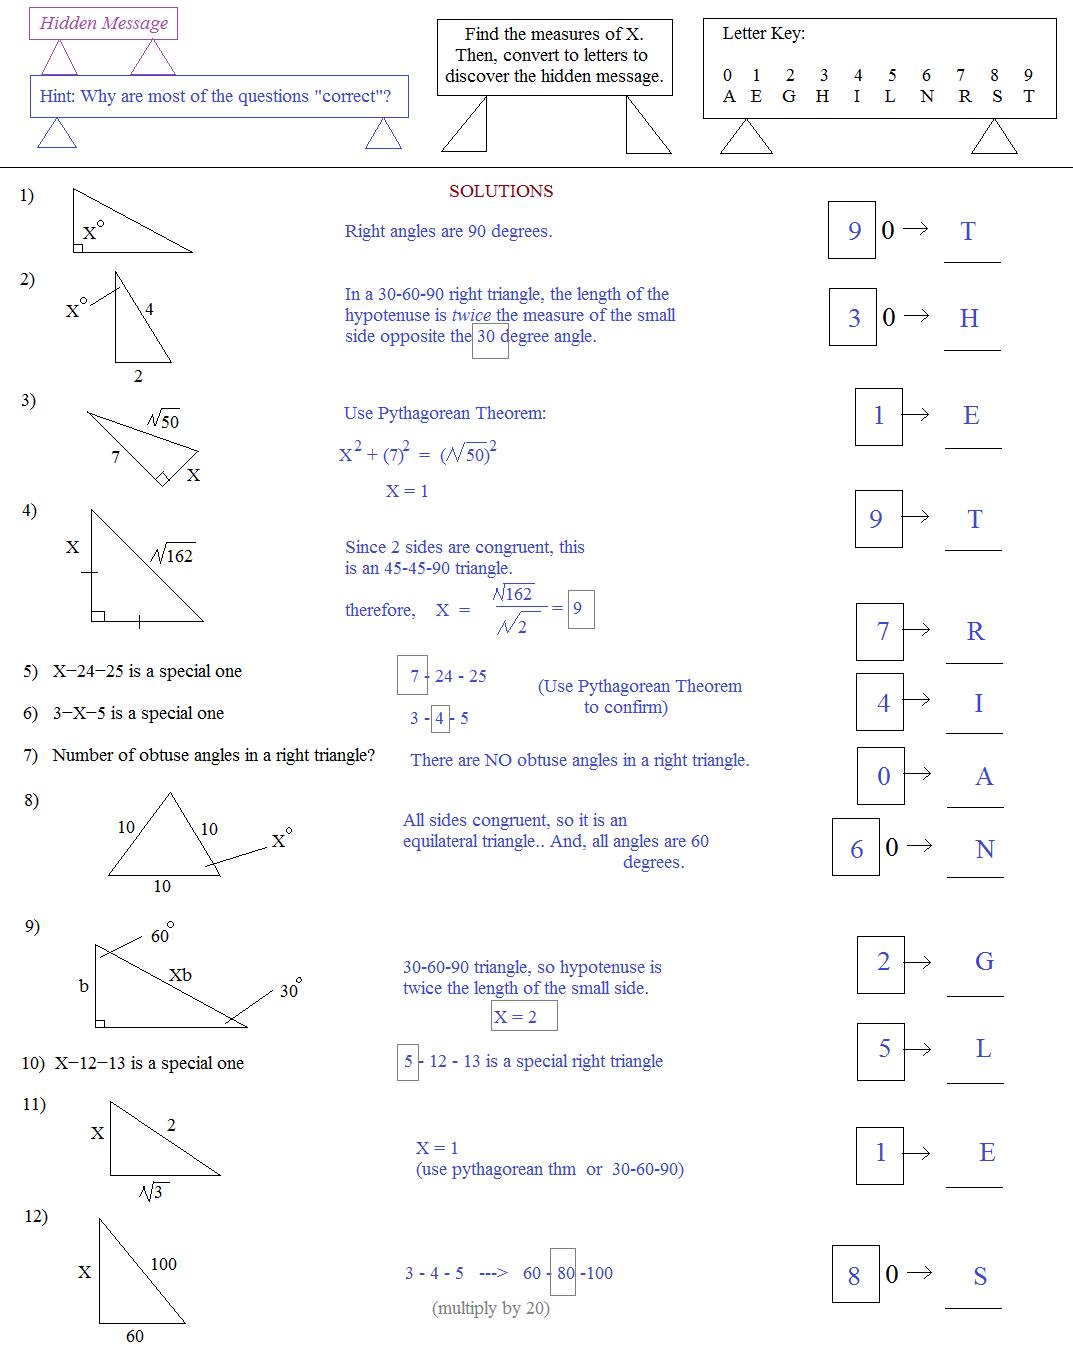 worksheet Geometry Similarity Worksheet triangle similarity worksheet times tables worksheets year 6 4 math plane right review hidden message triangles png solutions worksheet